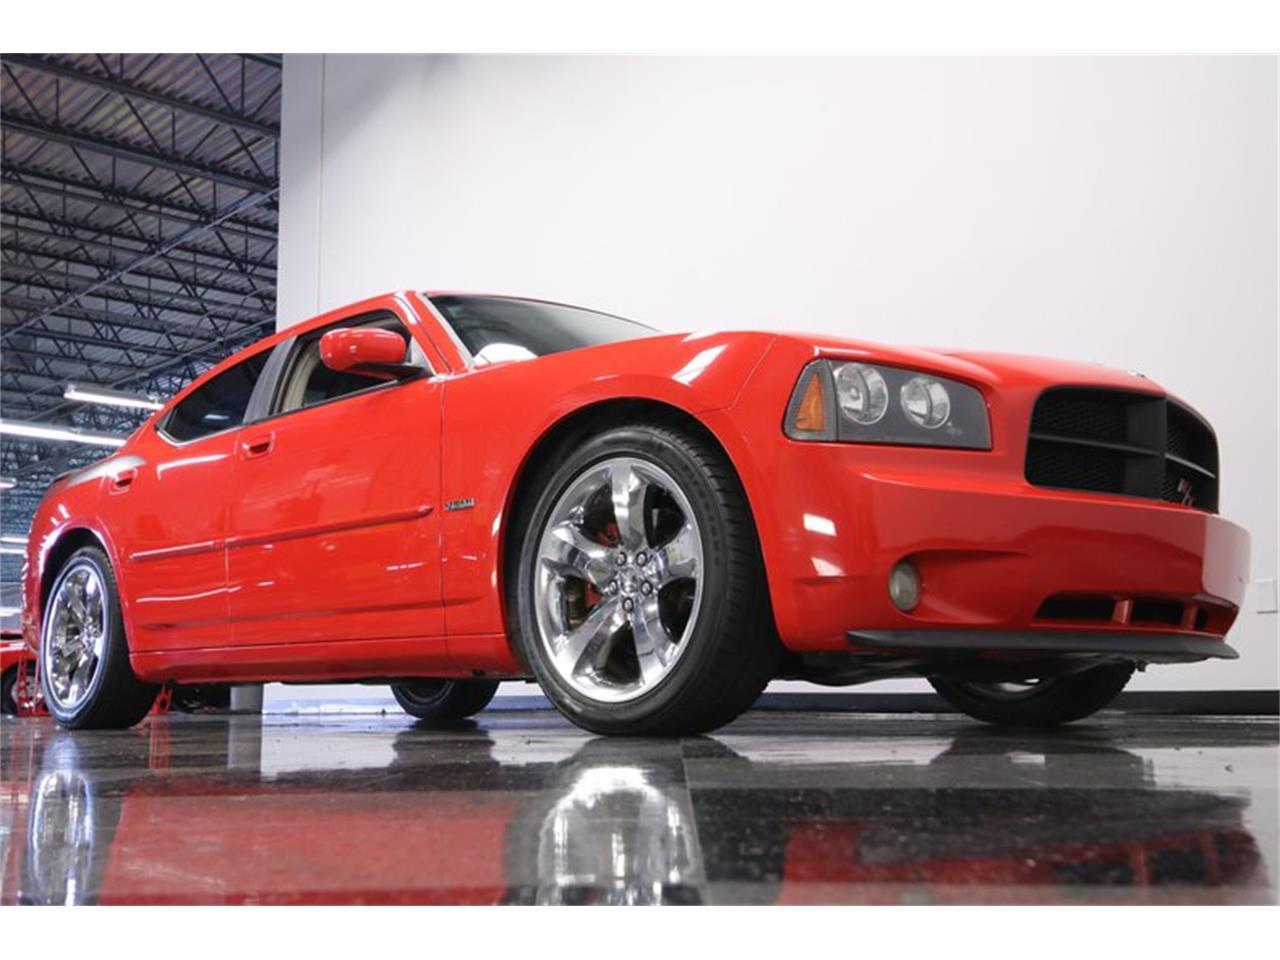 2006 Dodge Charger (CC-1272638) for sale in Lutz, Florida